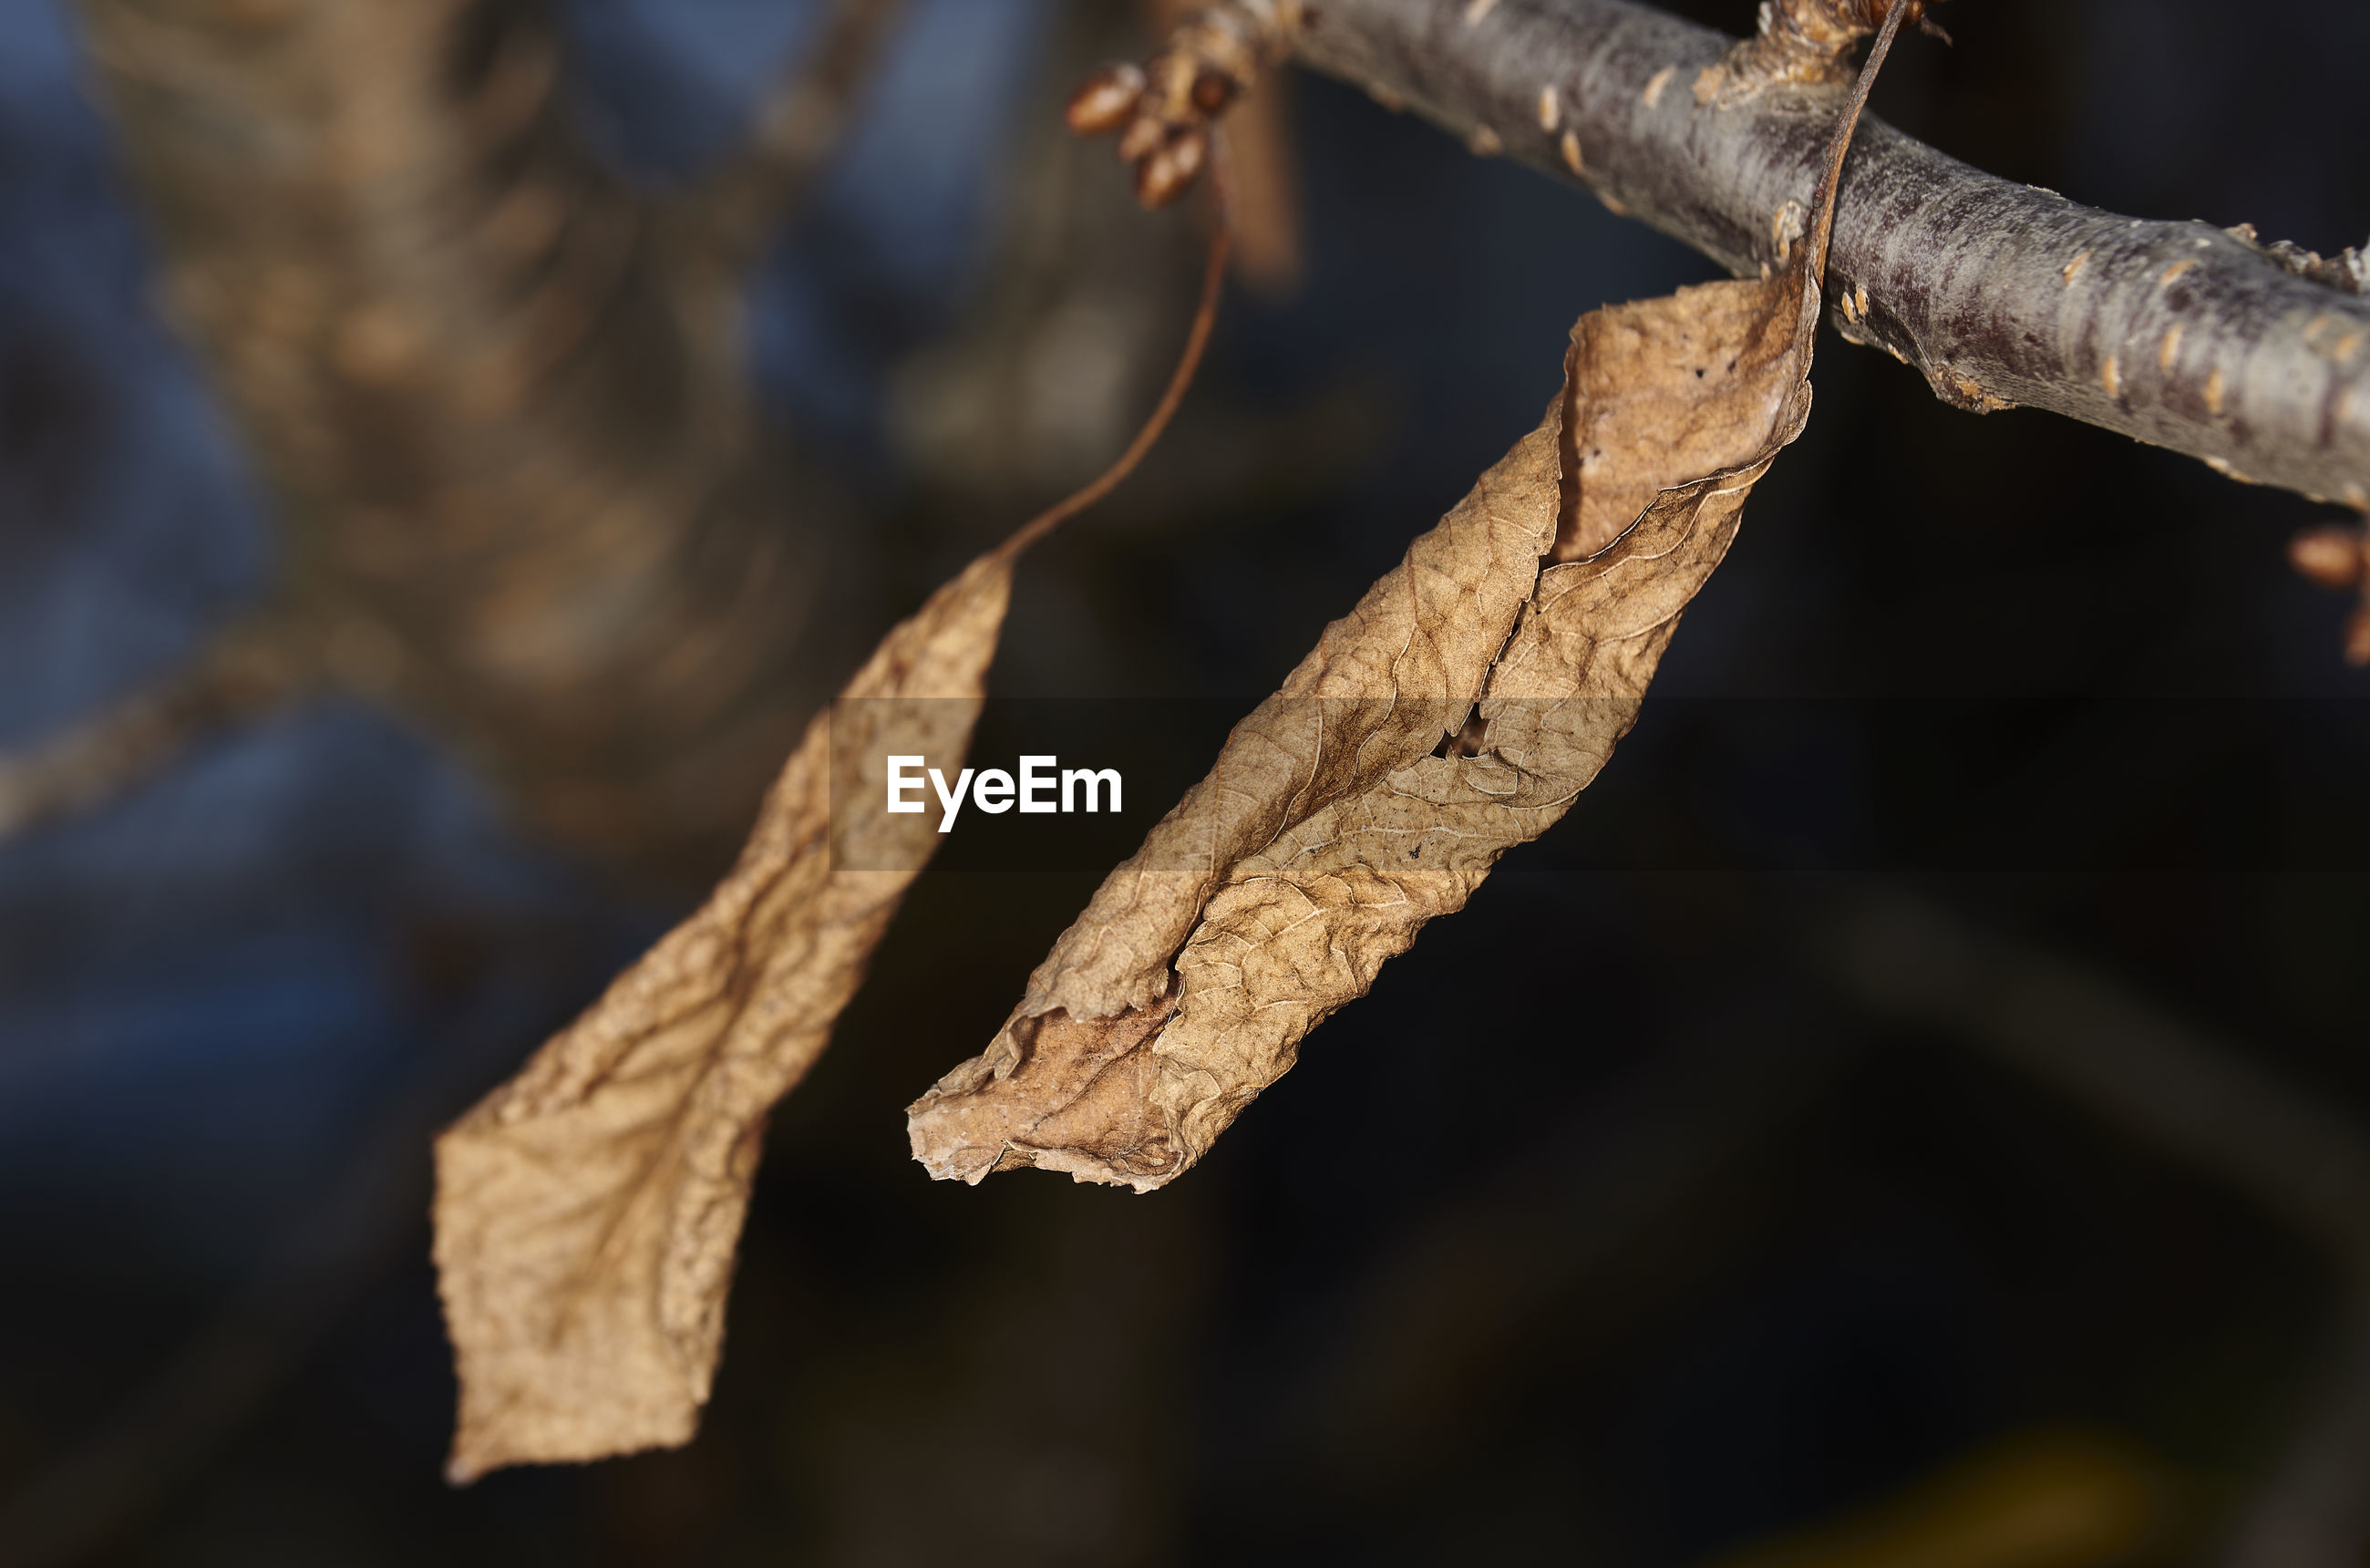 CLOSE-UP OF DRIED LEAVES ON BRANCH